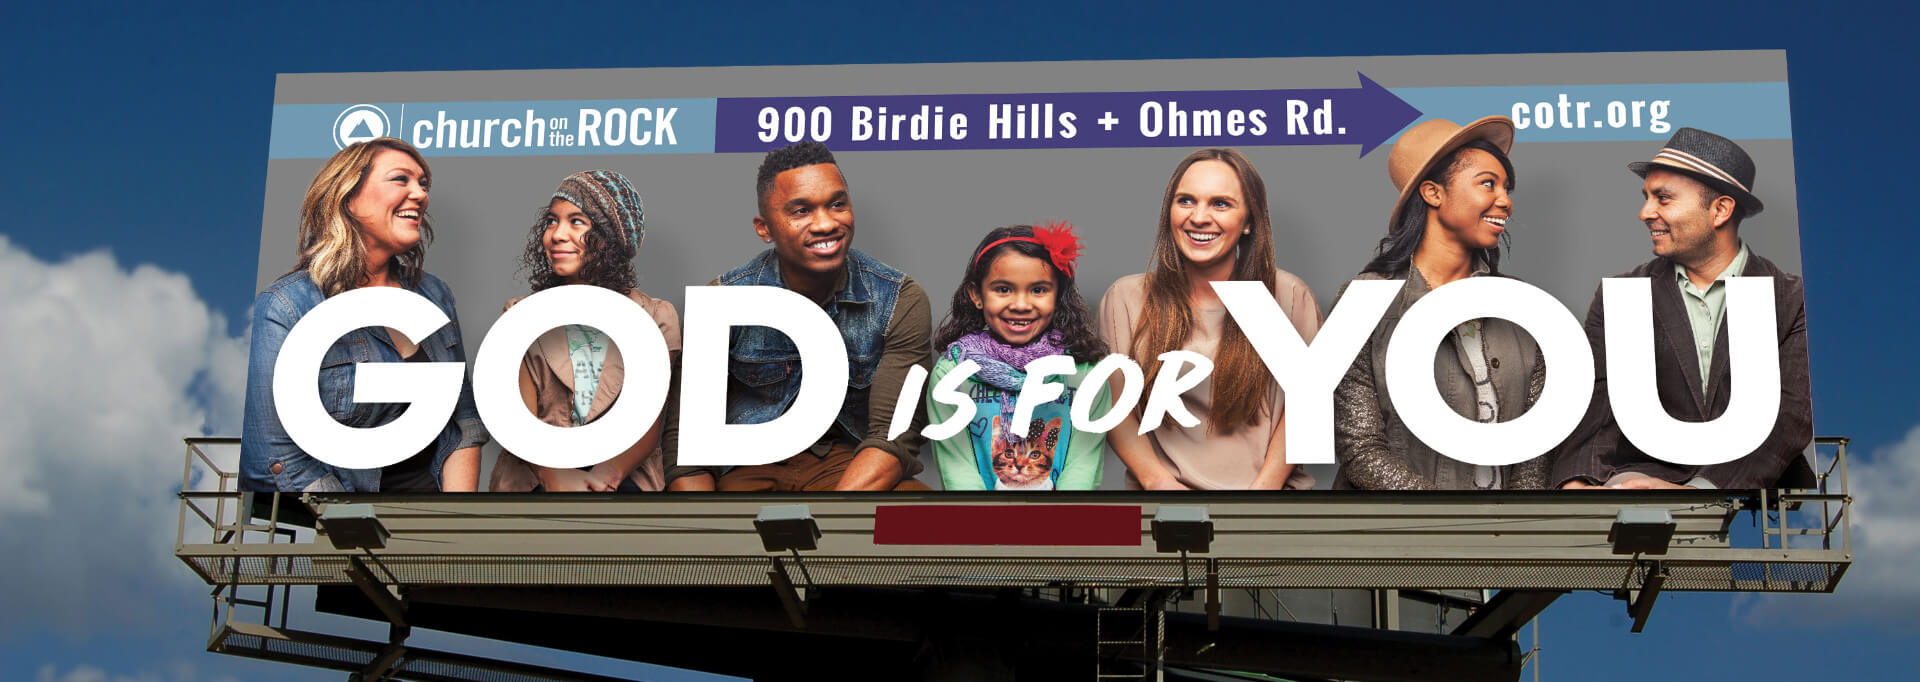 Church on the Rock billboard